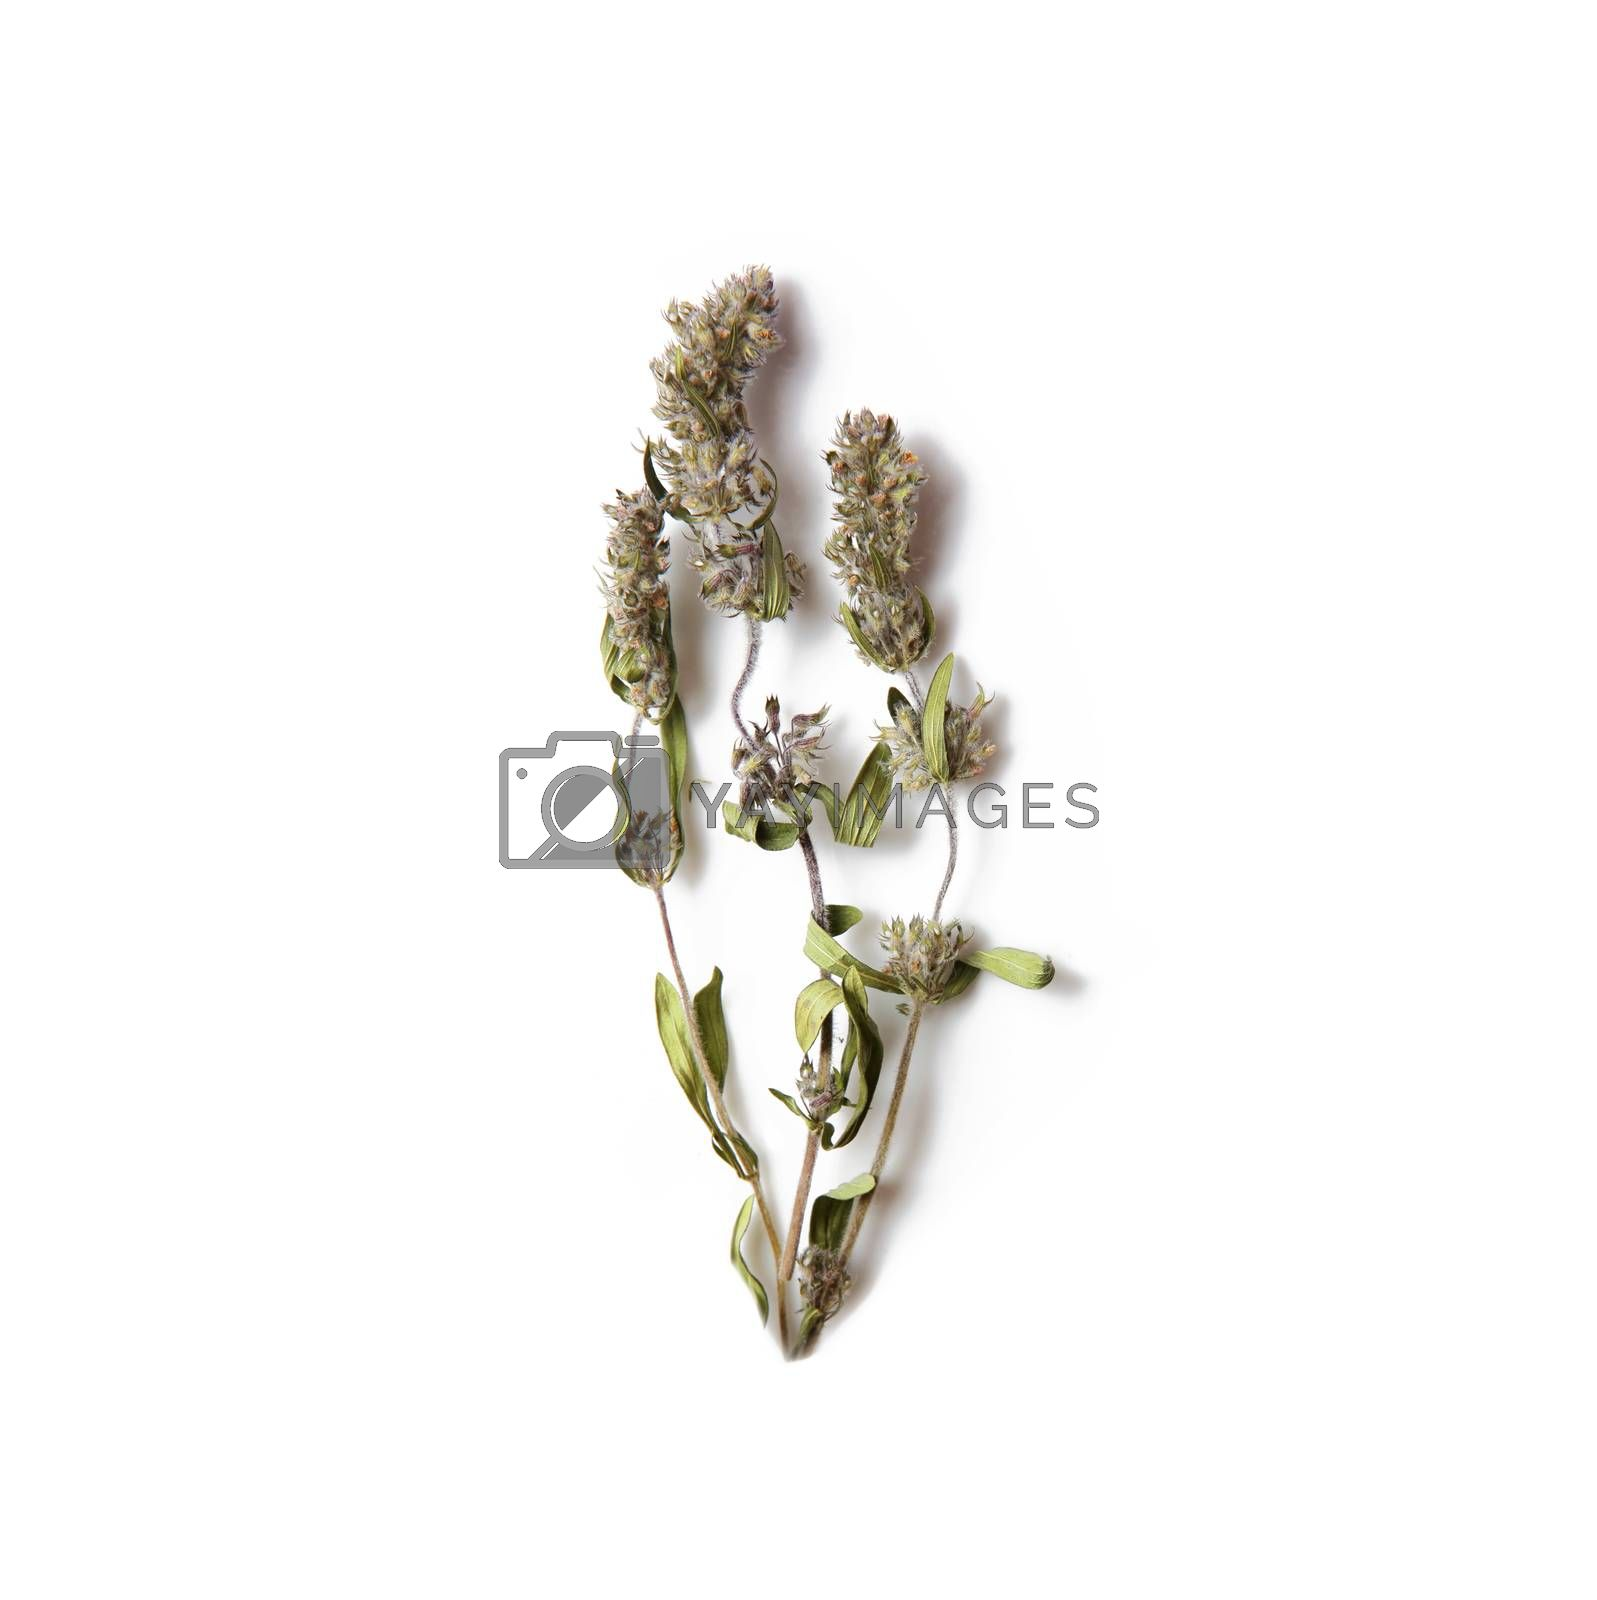 Mint flowers close-up isolated on white background